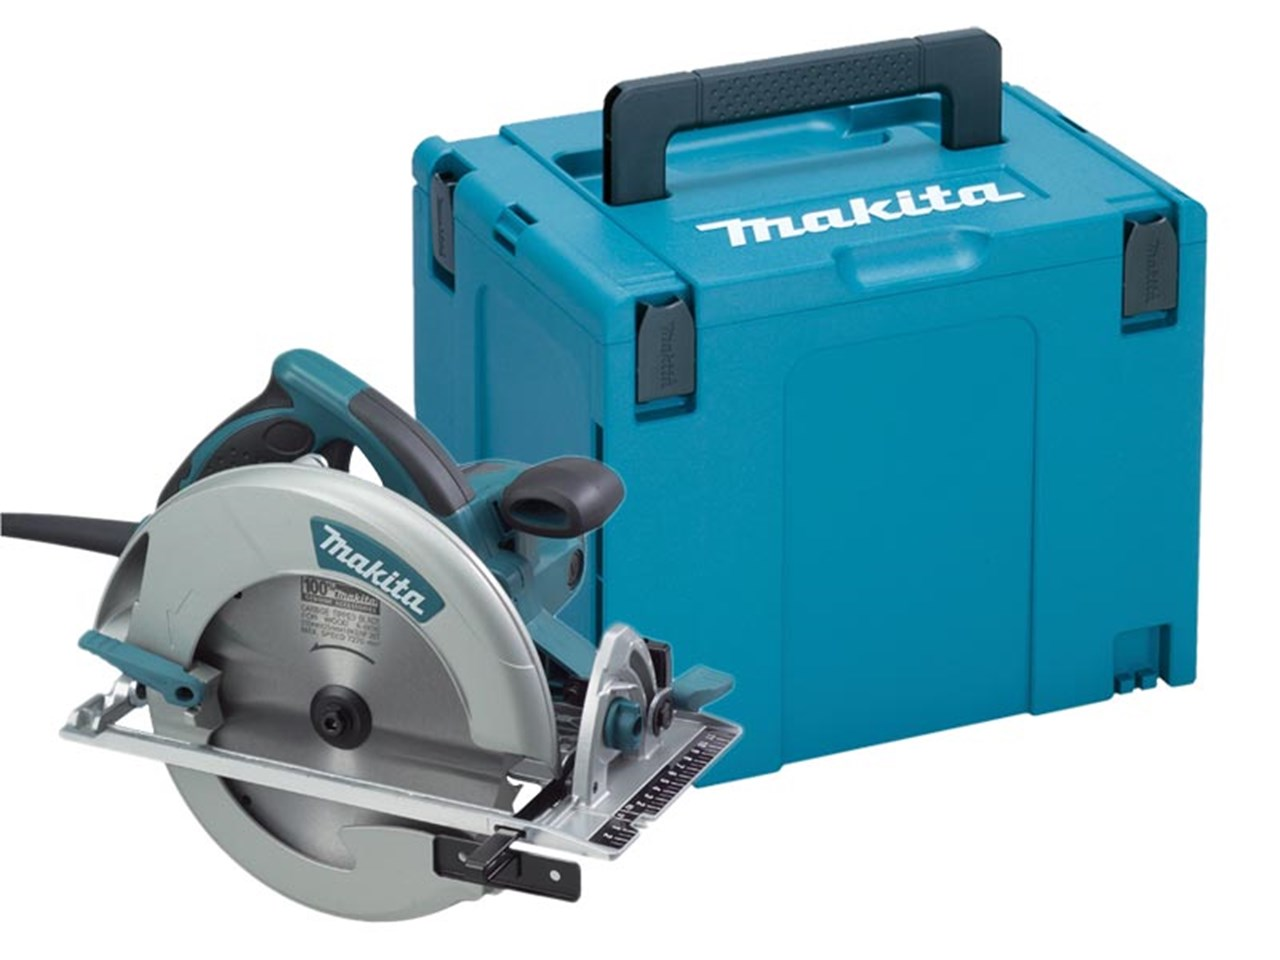 "Makita 5008MGJ 240V 210mm Circular Saw - Cutting Depth of 75.5mm (3"")"